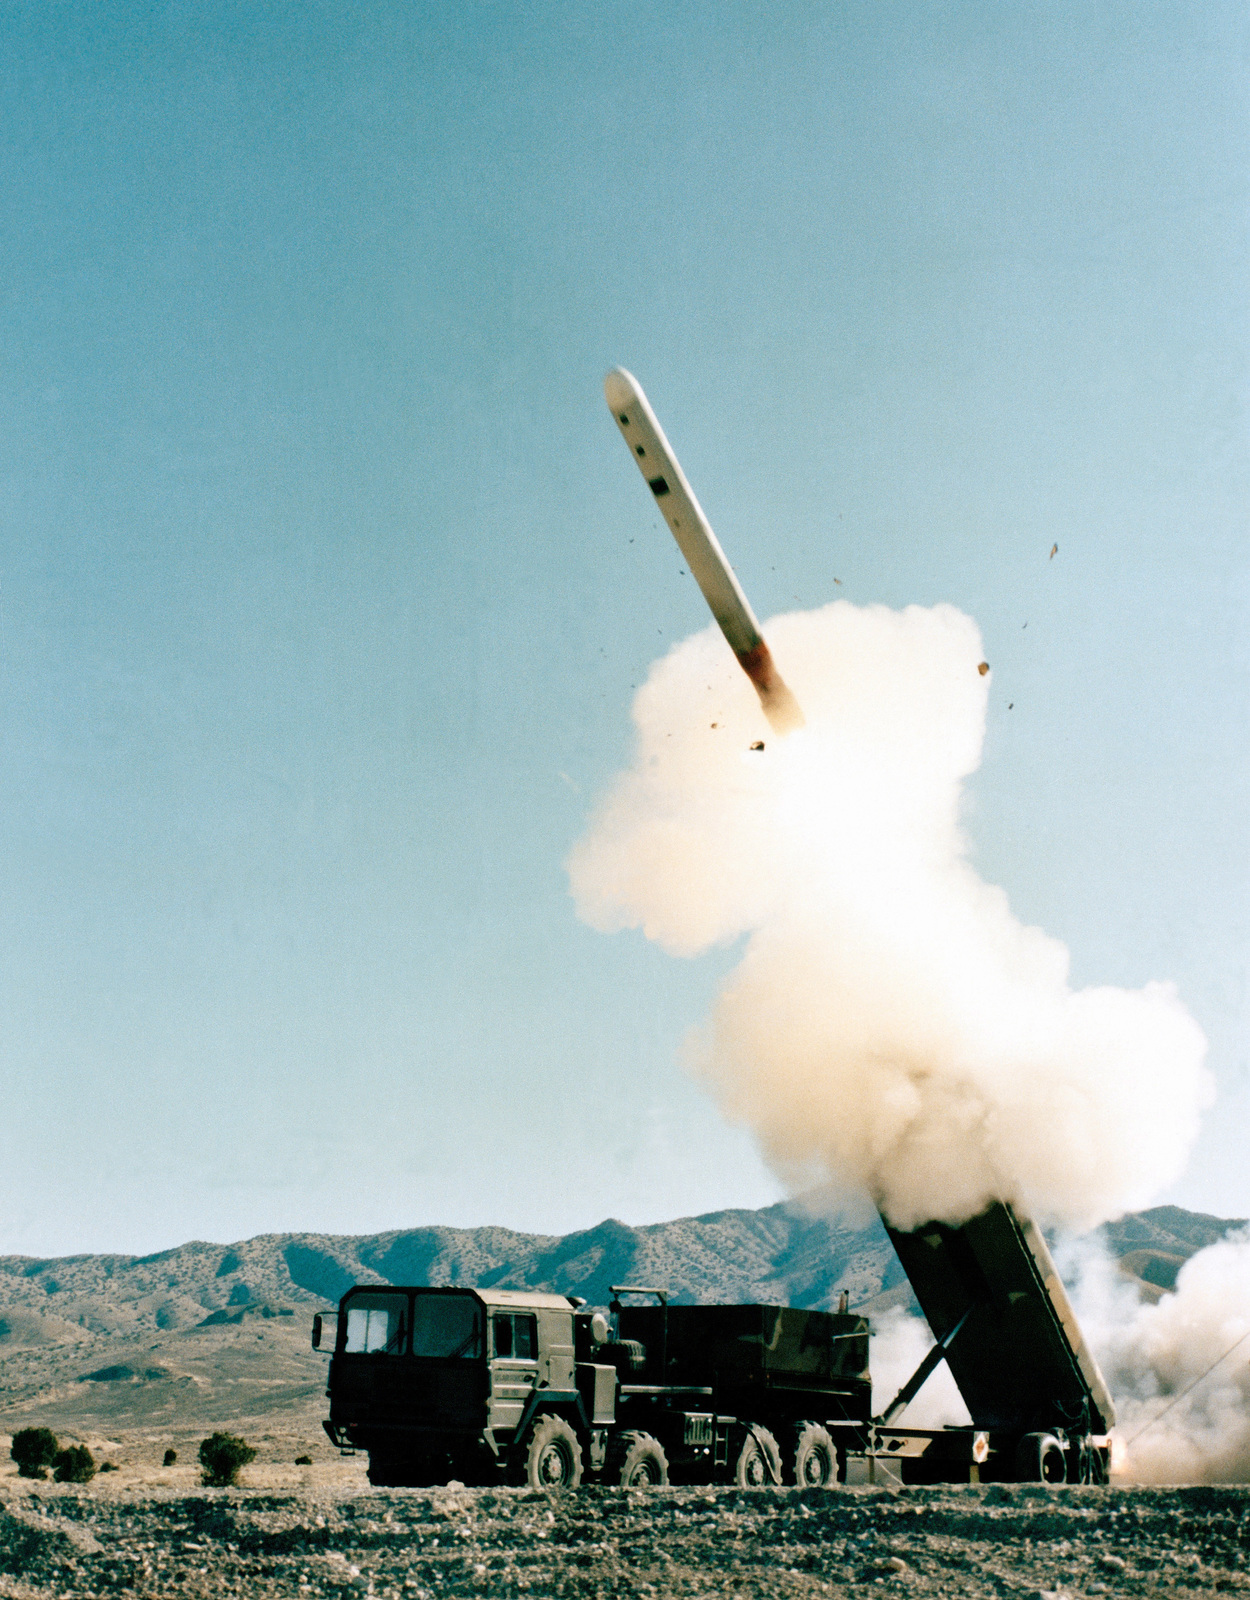 A Ground Launch Cruise Missile (GLCM) after it emerges from the Transporter-Erector Launcher (TEL) during a test firing